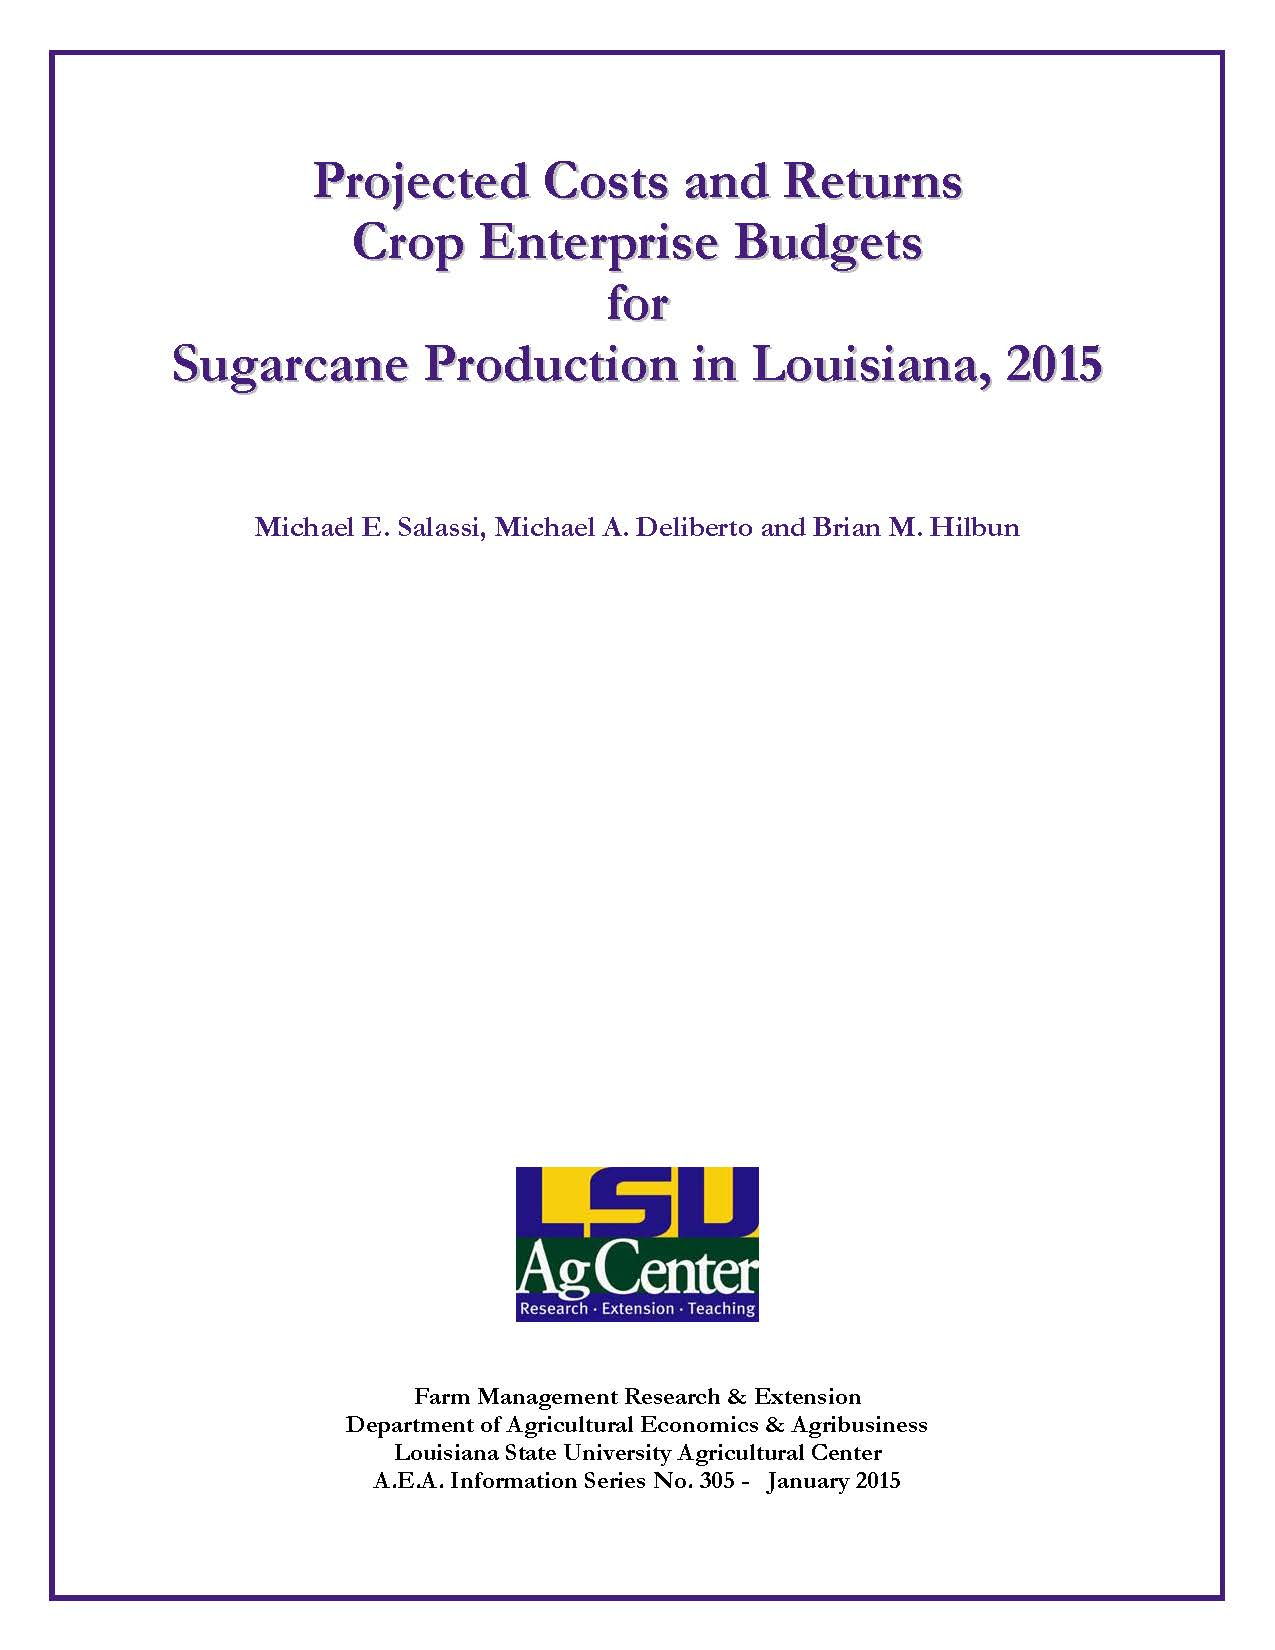 2015 Sugarcane Crop Enterprise Budgets